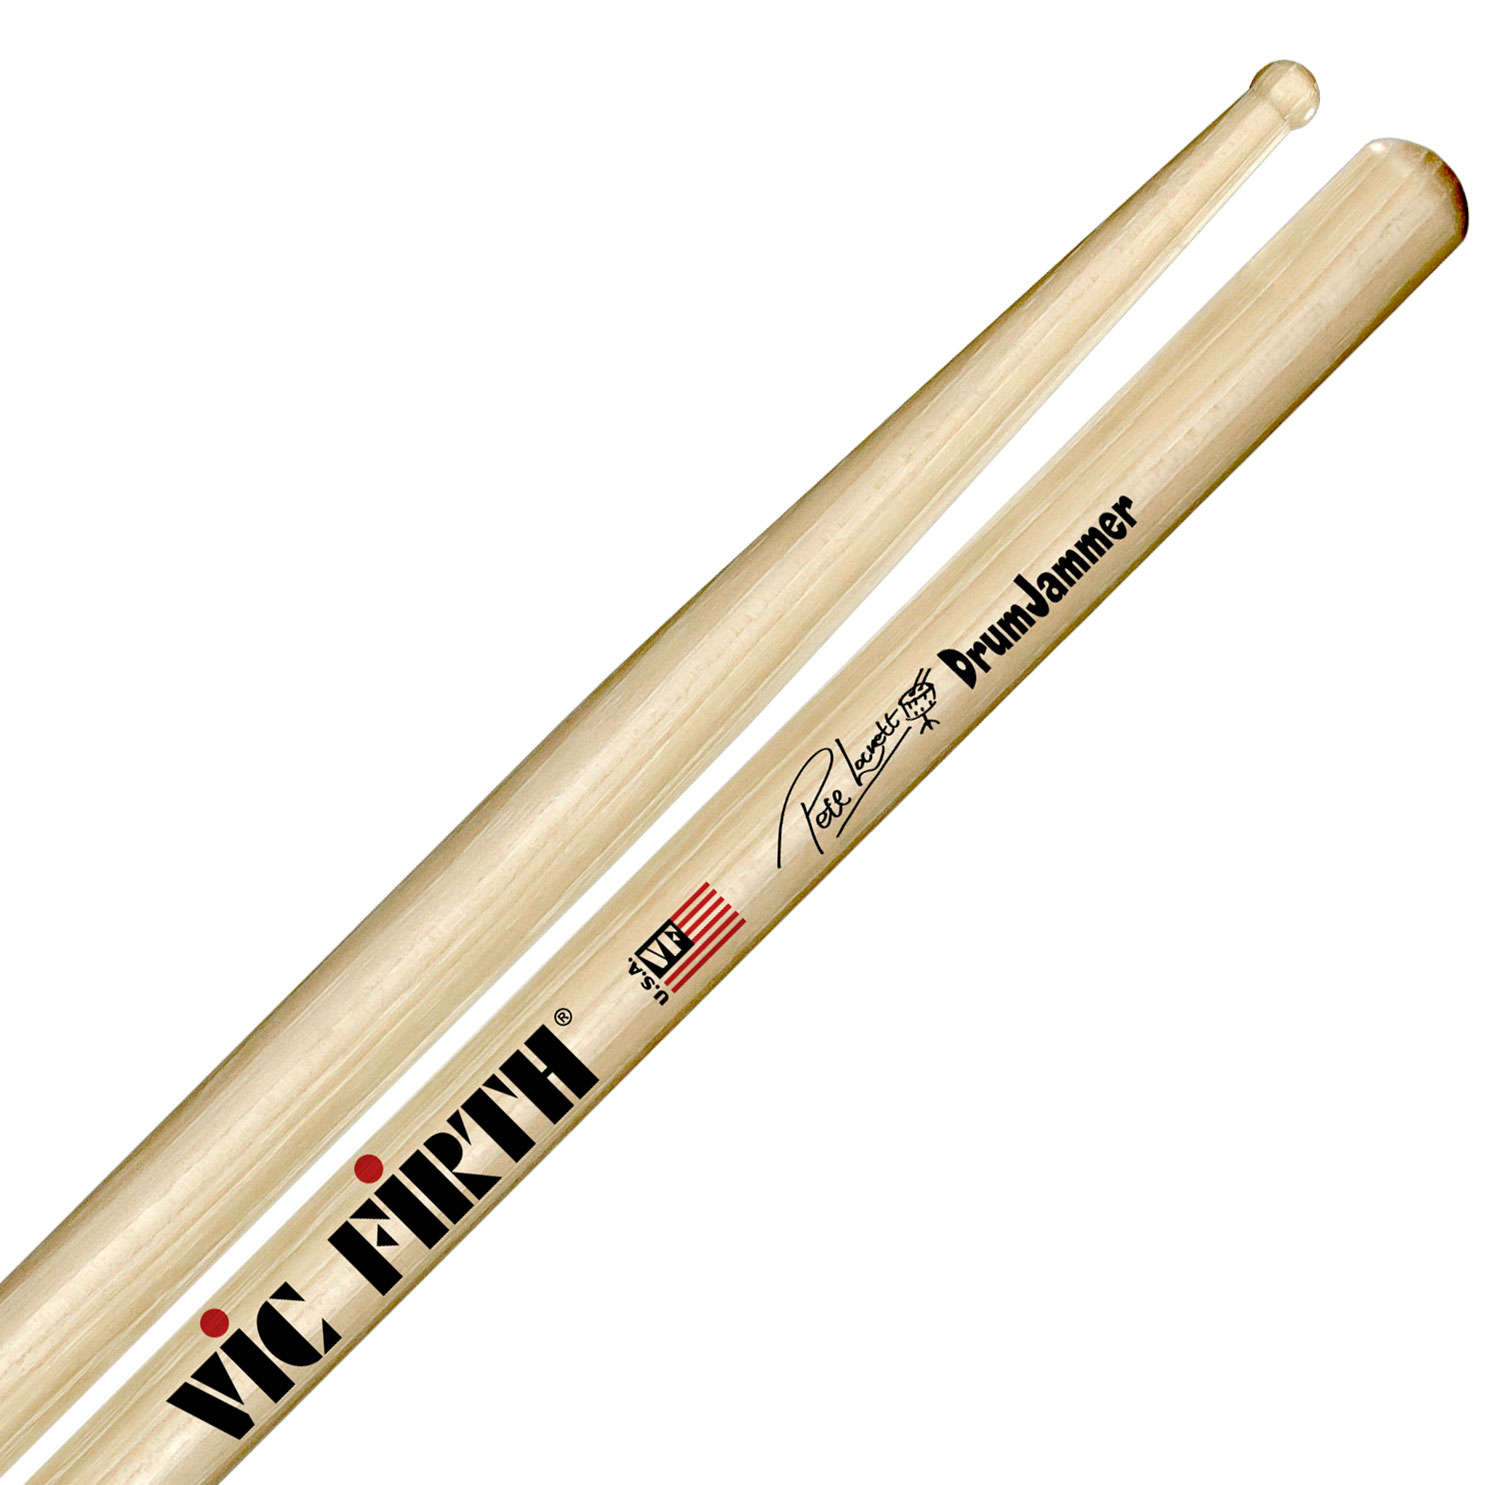 Vic Firth Pete Lockett DrumJammer Signature Drumsticks